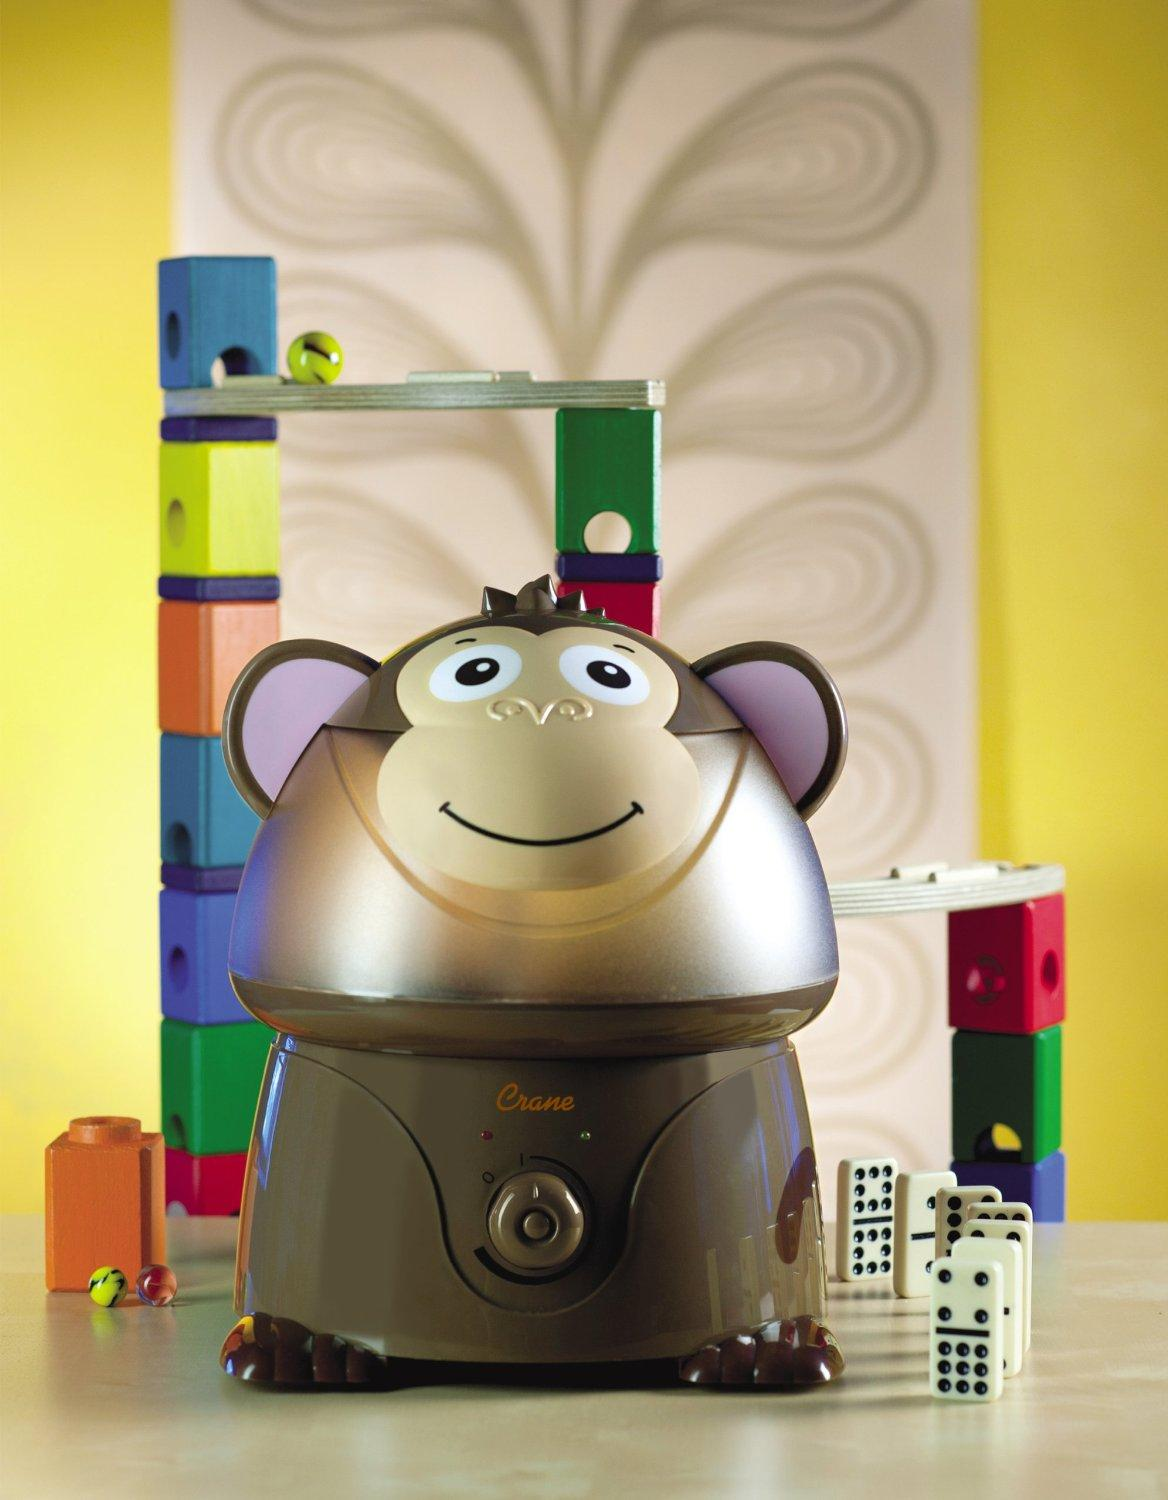 $30.49 Crane Adorable Ultrasonic Cool Mist Humidifier with 2.1 Gallon Output per Day - Monkey